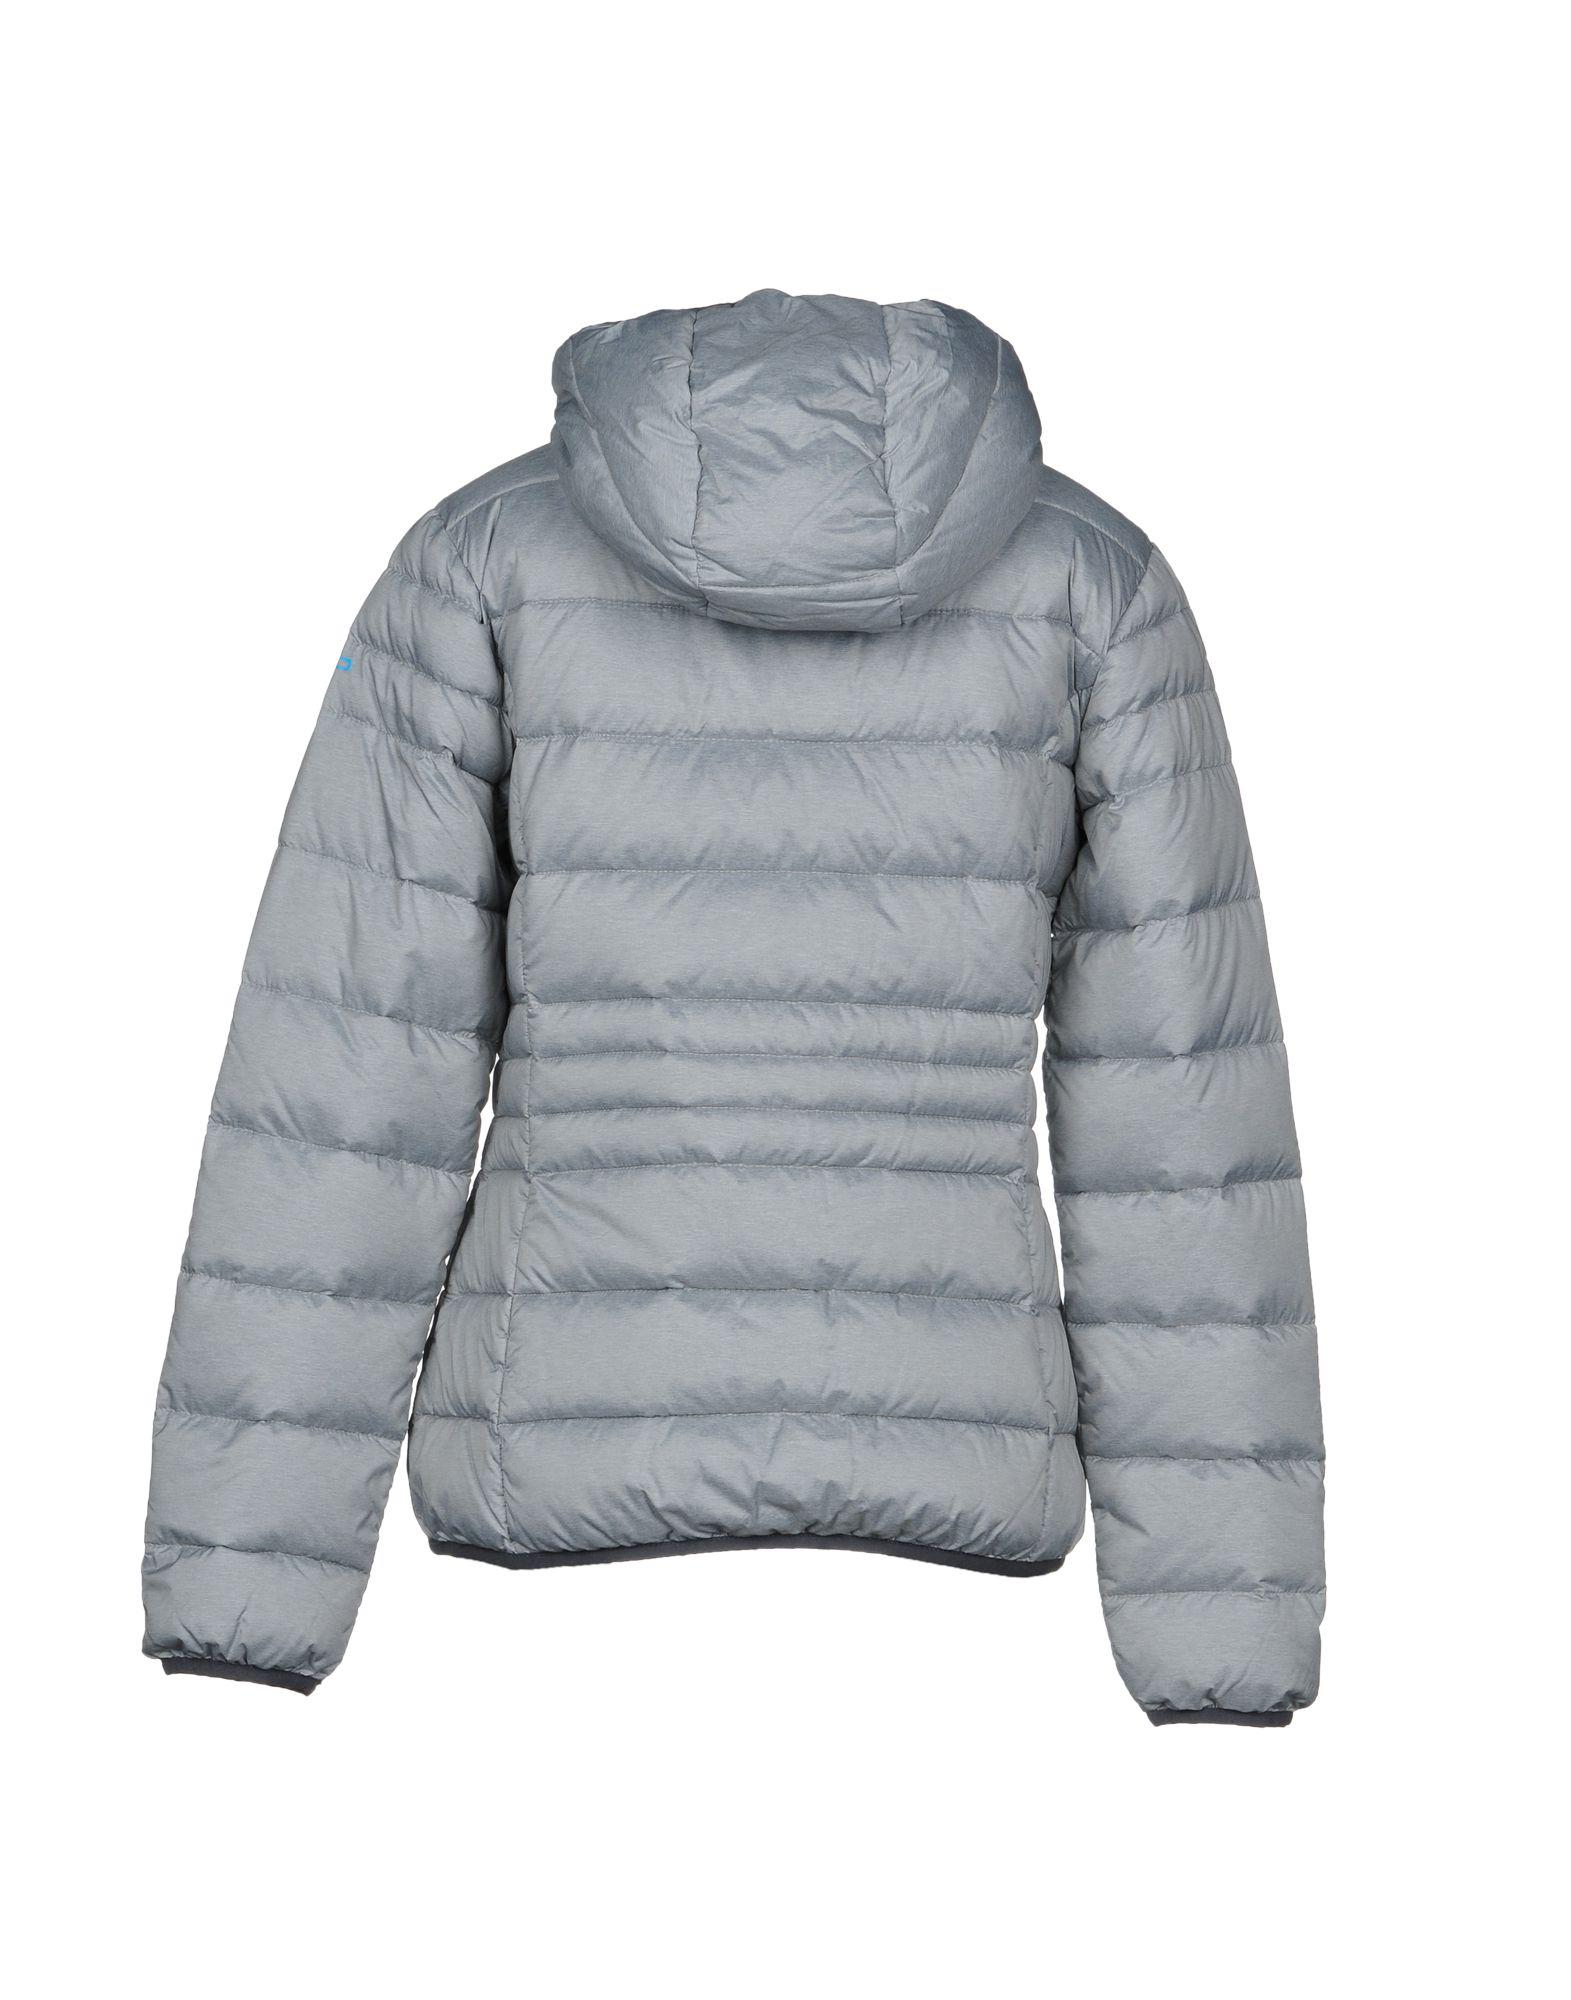 reputable site 9fdad 2472e Lyst - CMP by F.LLI CAMPAGNOLO Down Jacket in Gray